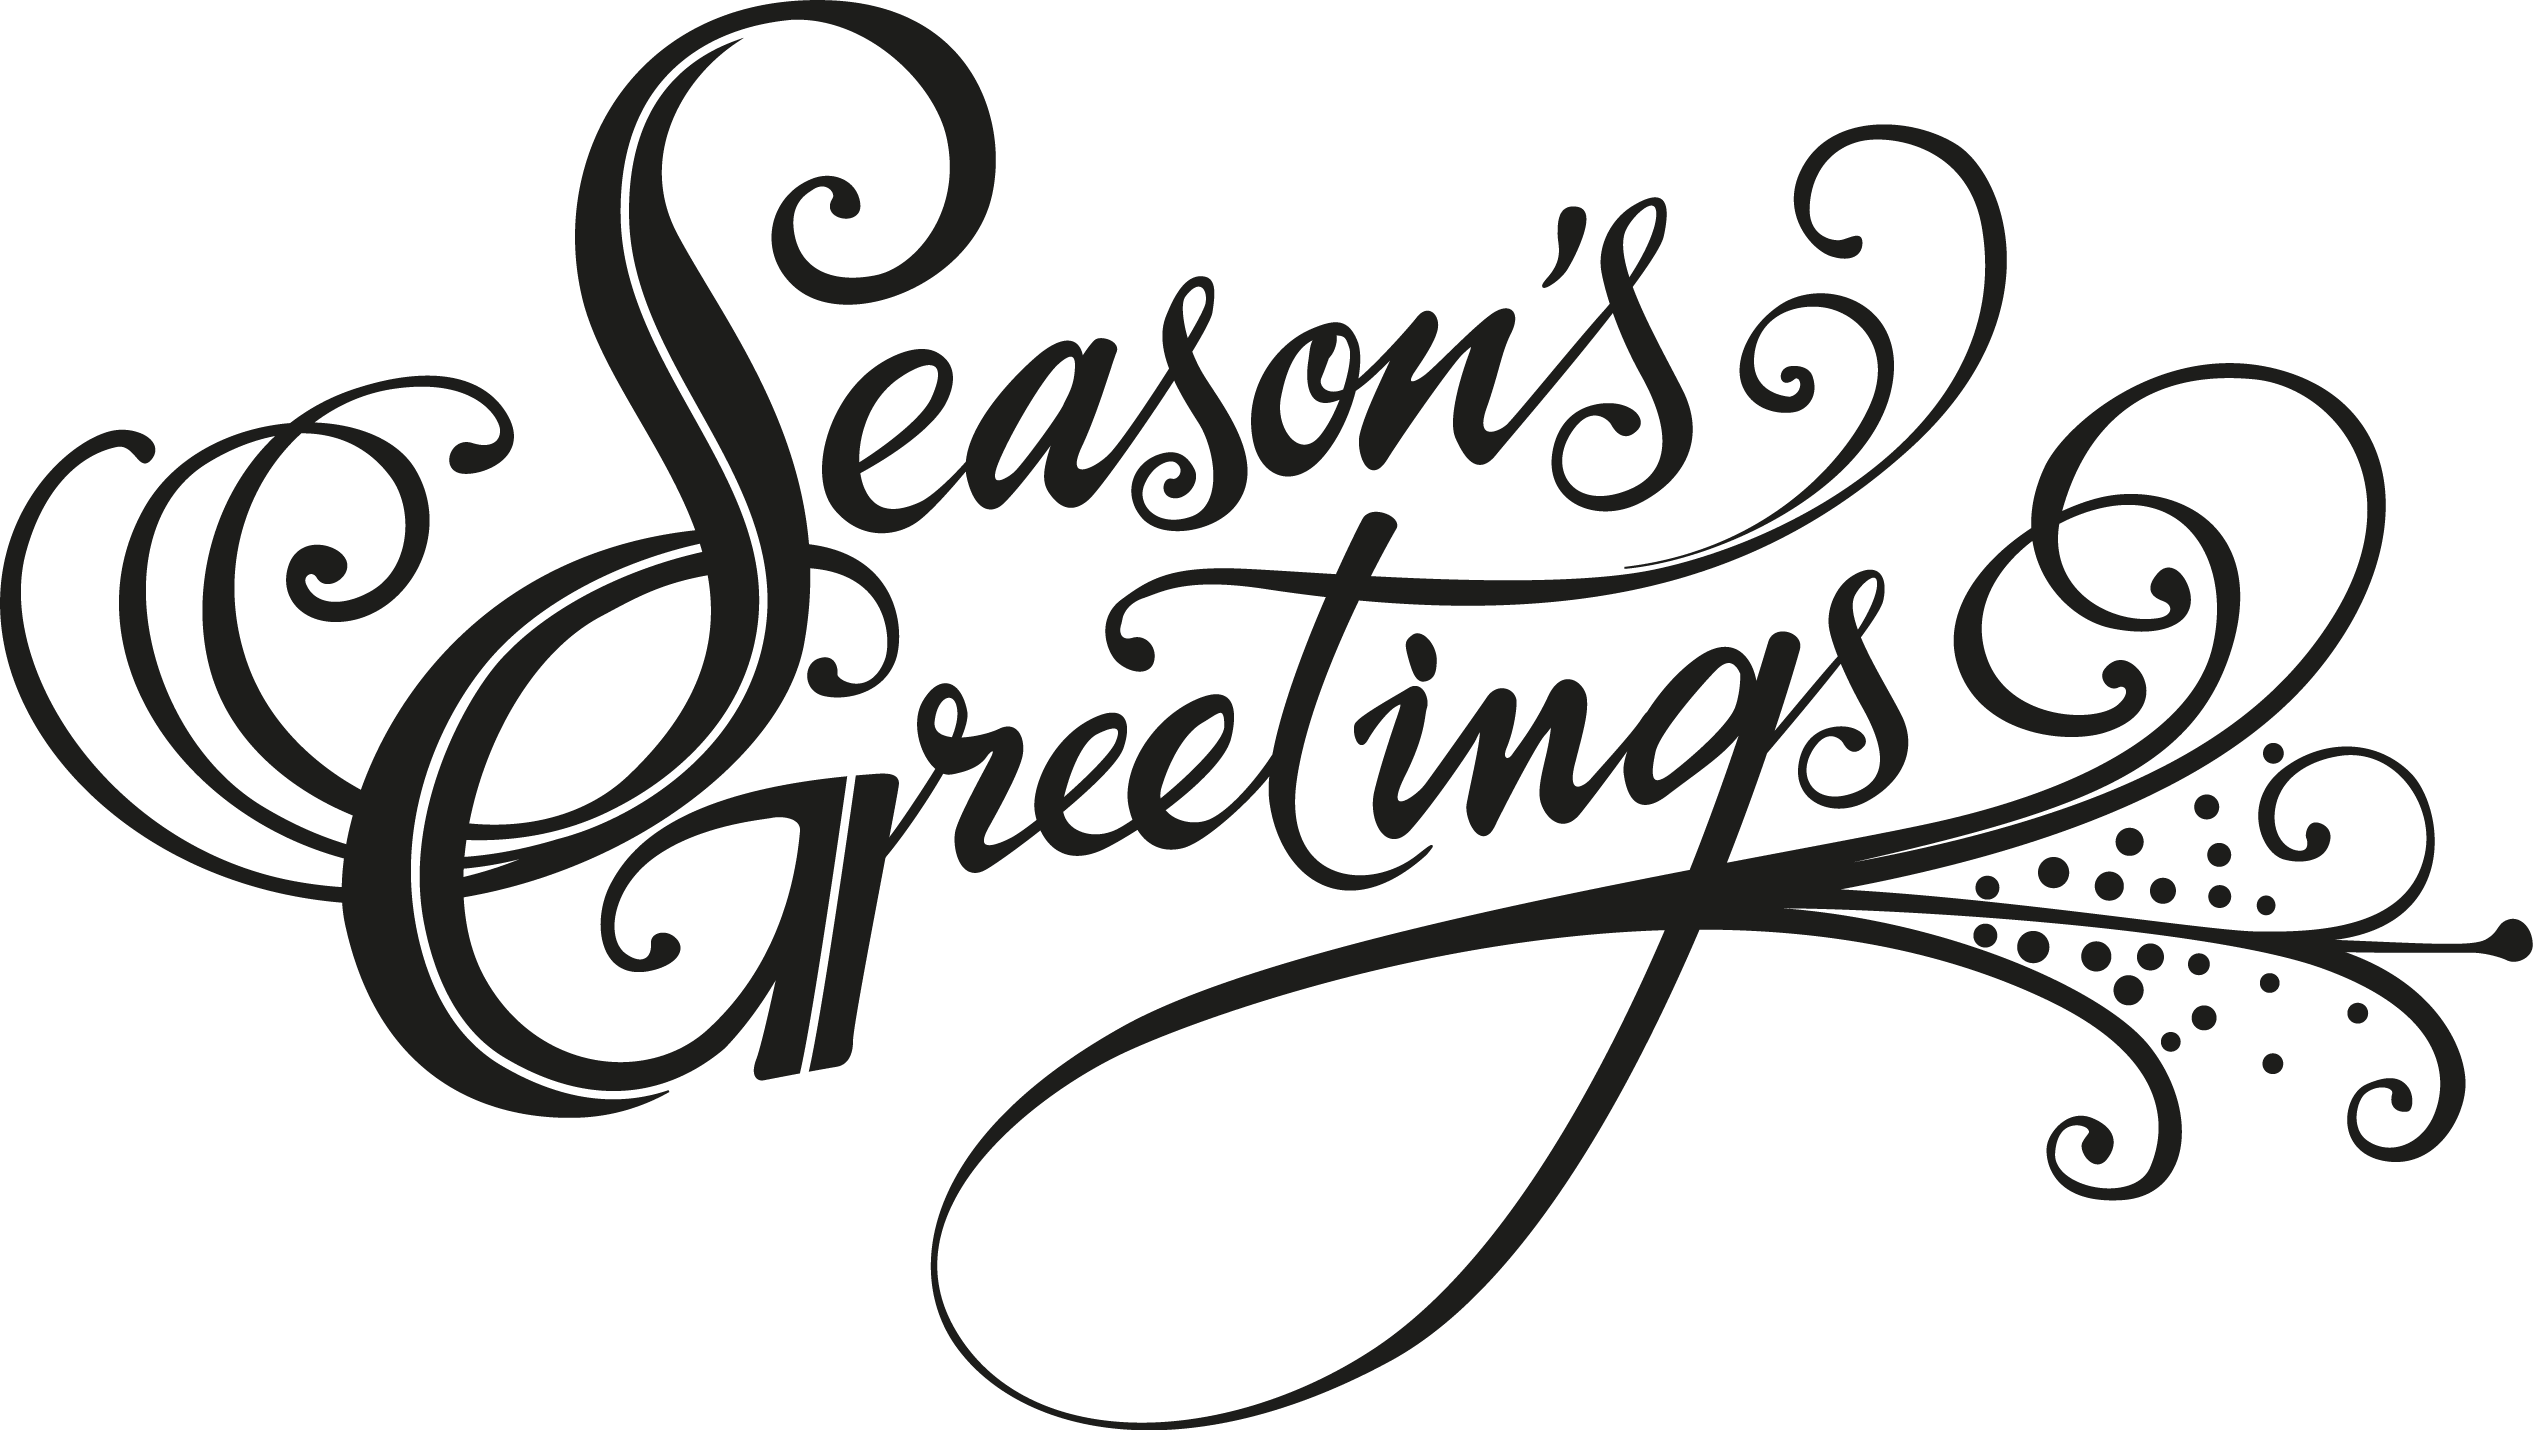 Christmas clipart seasons greetings.